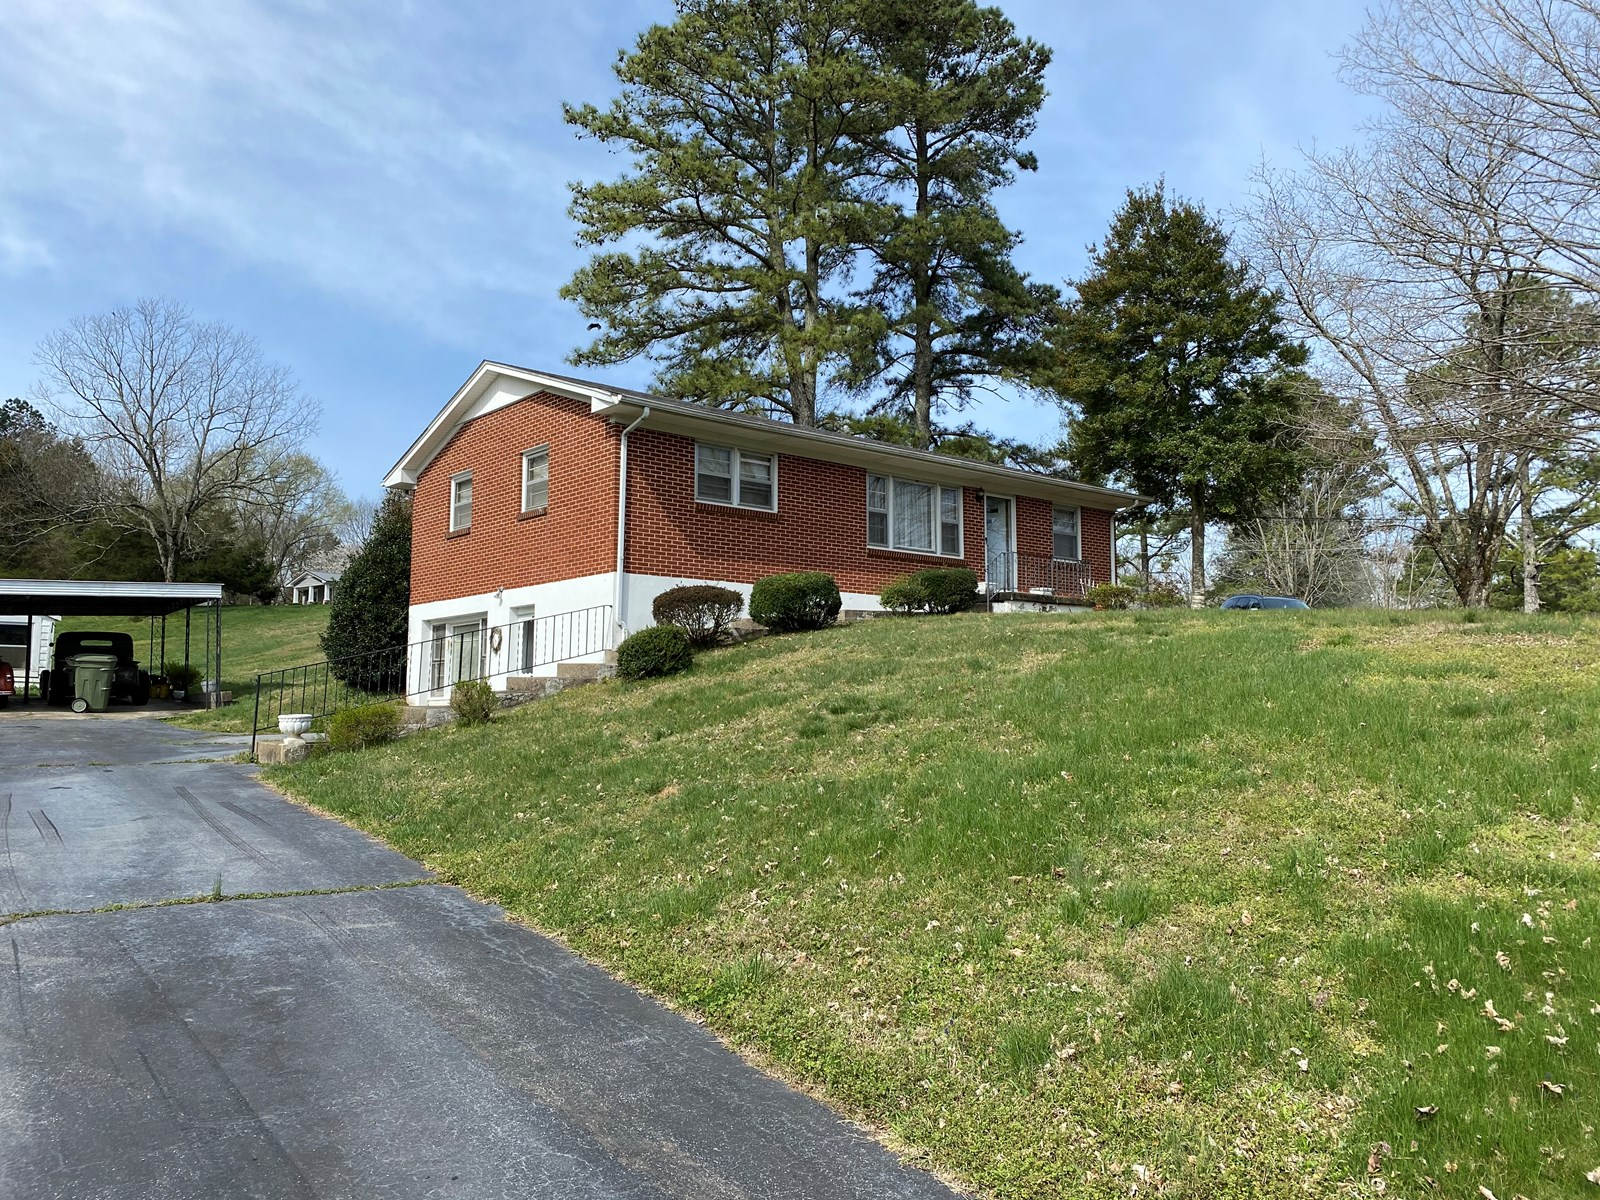 BRICK HOUSE FOR SALE IN LAWRENCEBURG TENNESSEE